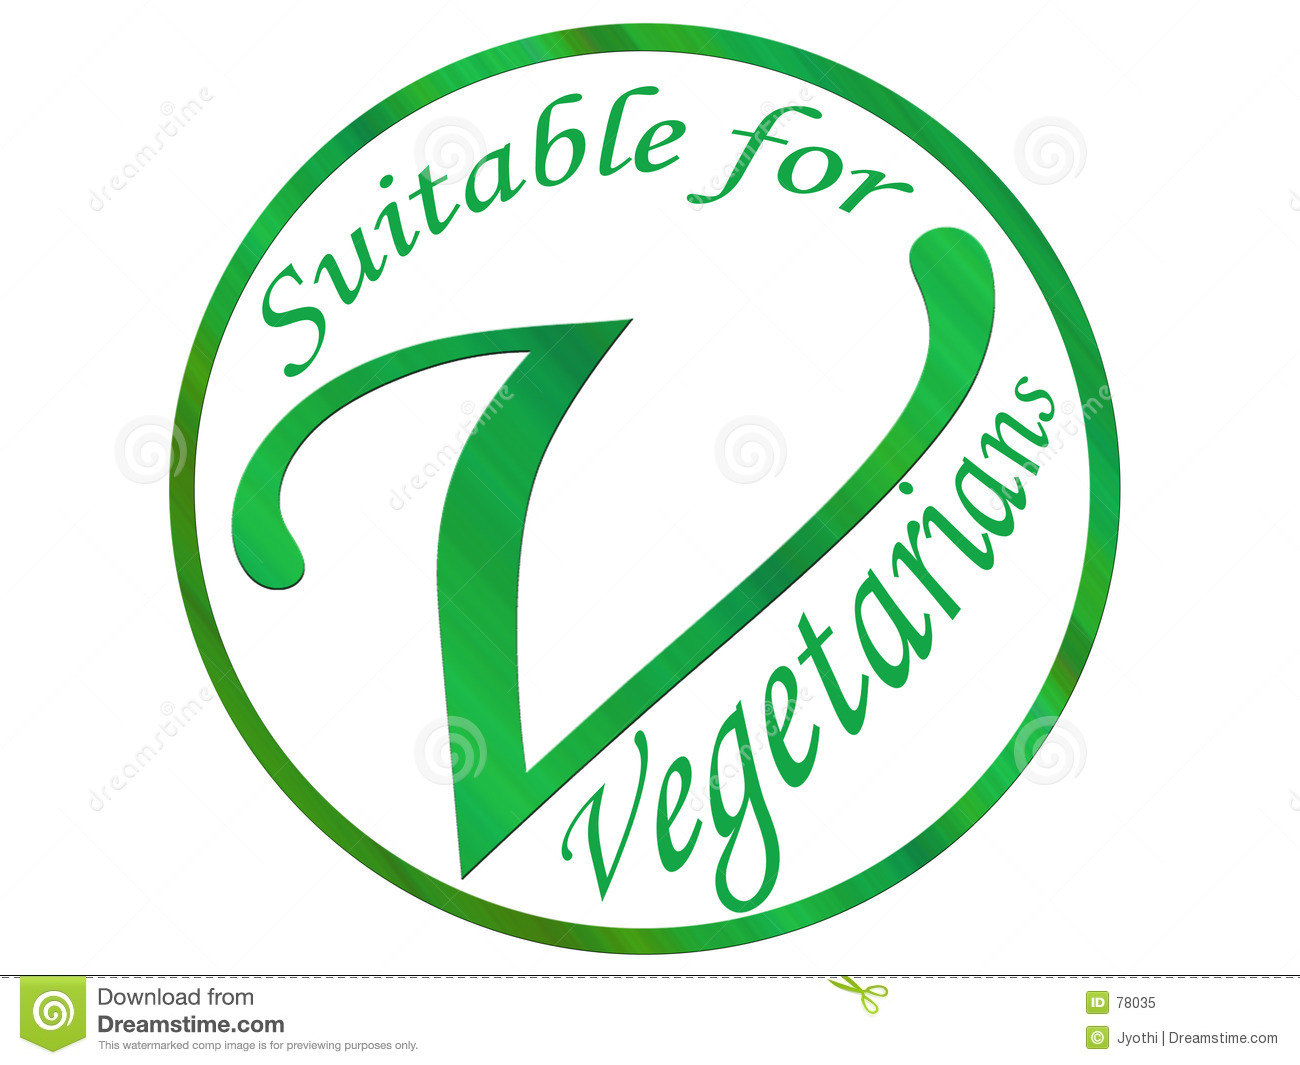 Vegan/vegetarian: CLIPART Photos, Images, & Pictures - Dreamstime ...